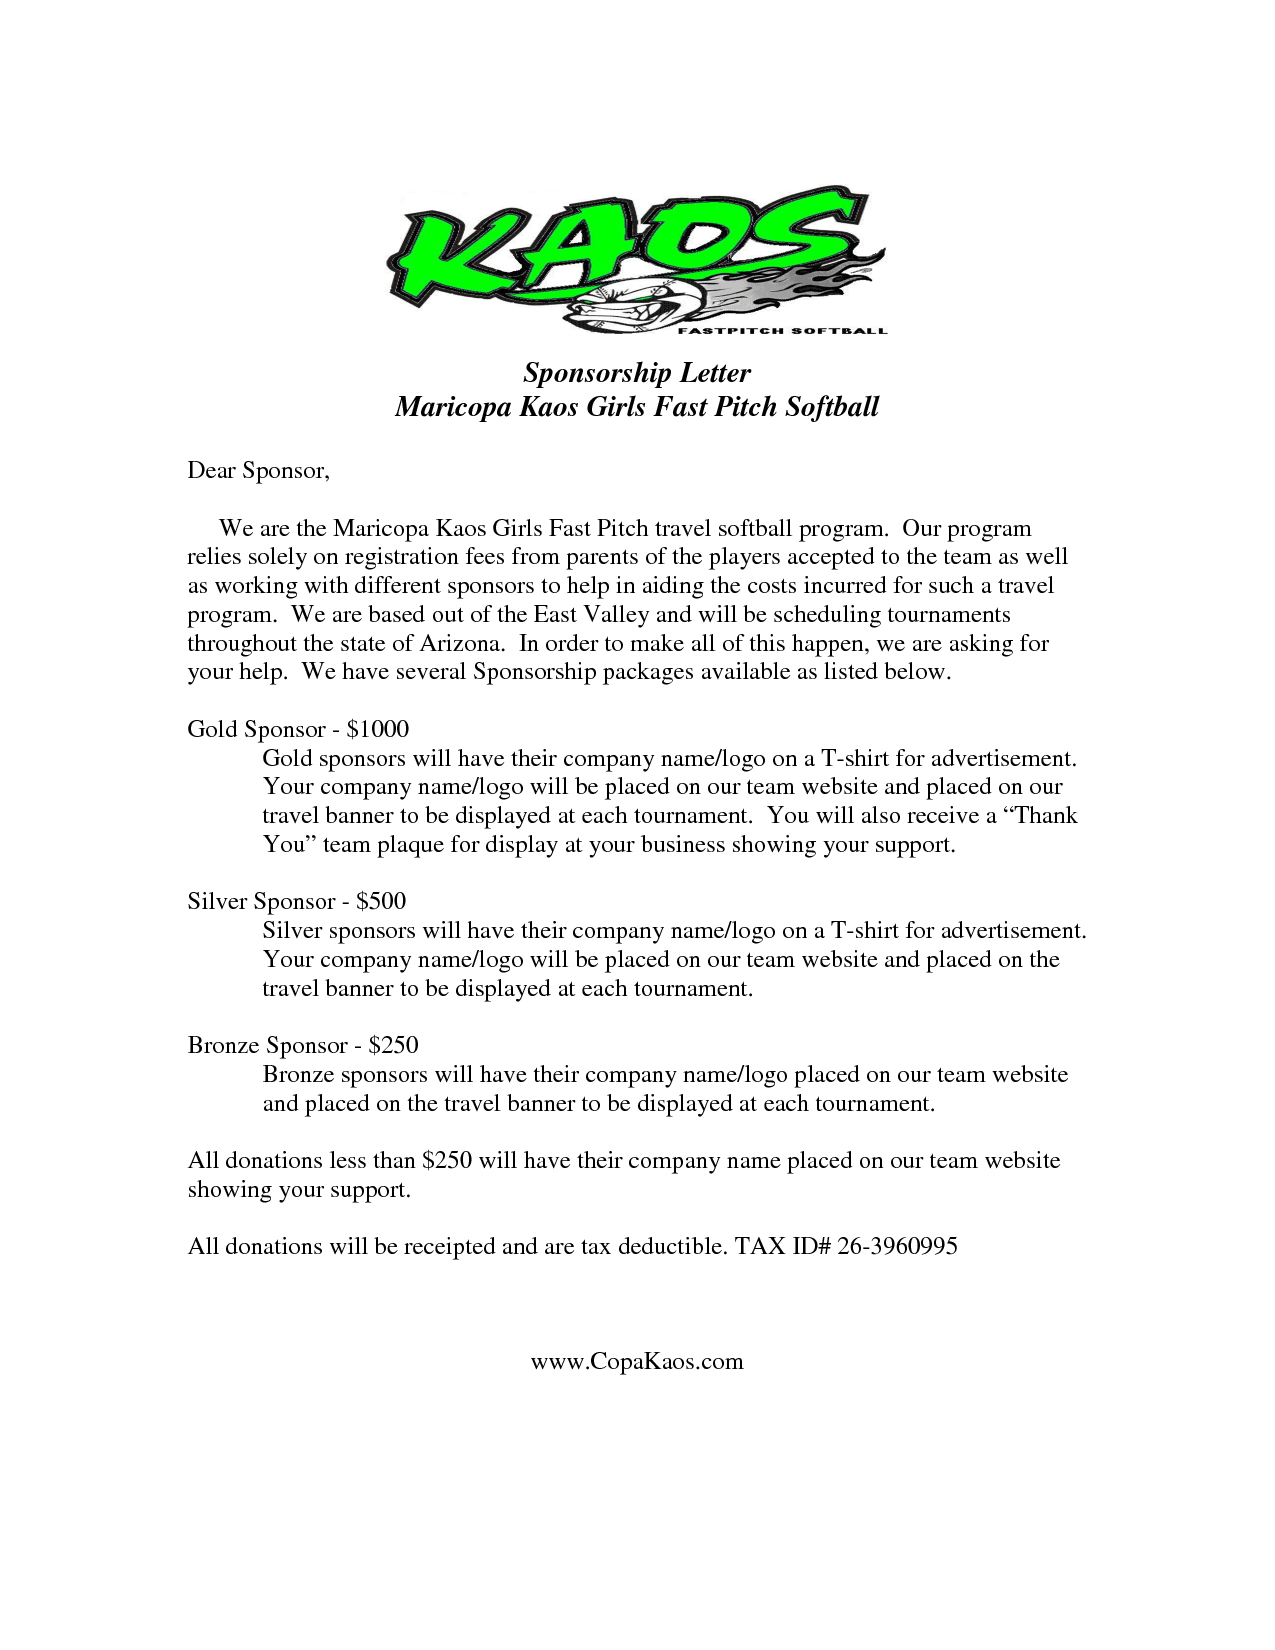 Request for Donations Letter Template Free - Image Result for Sample Sponsor Request Letter Donation